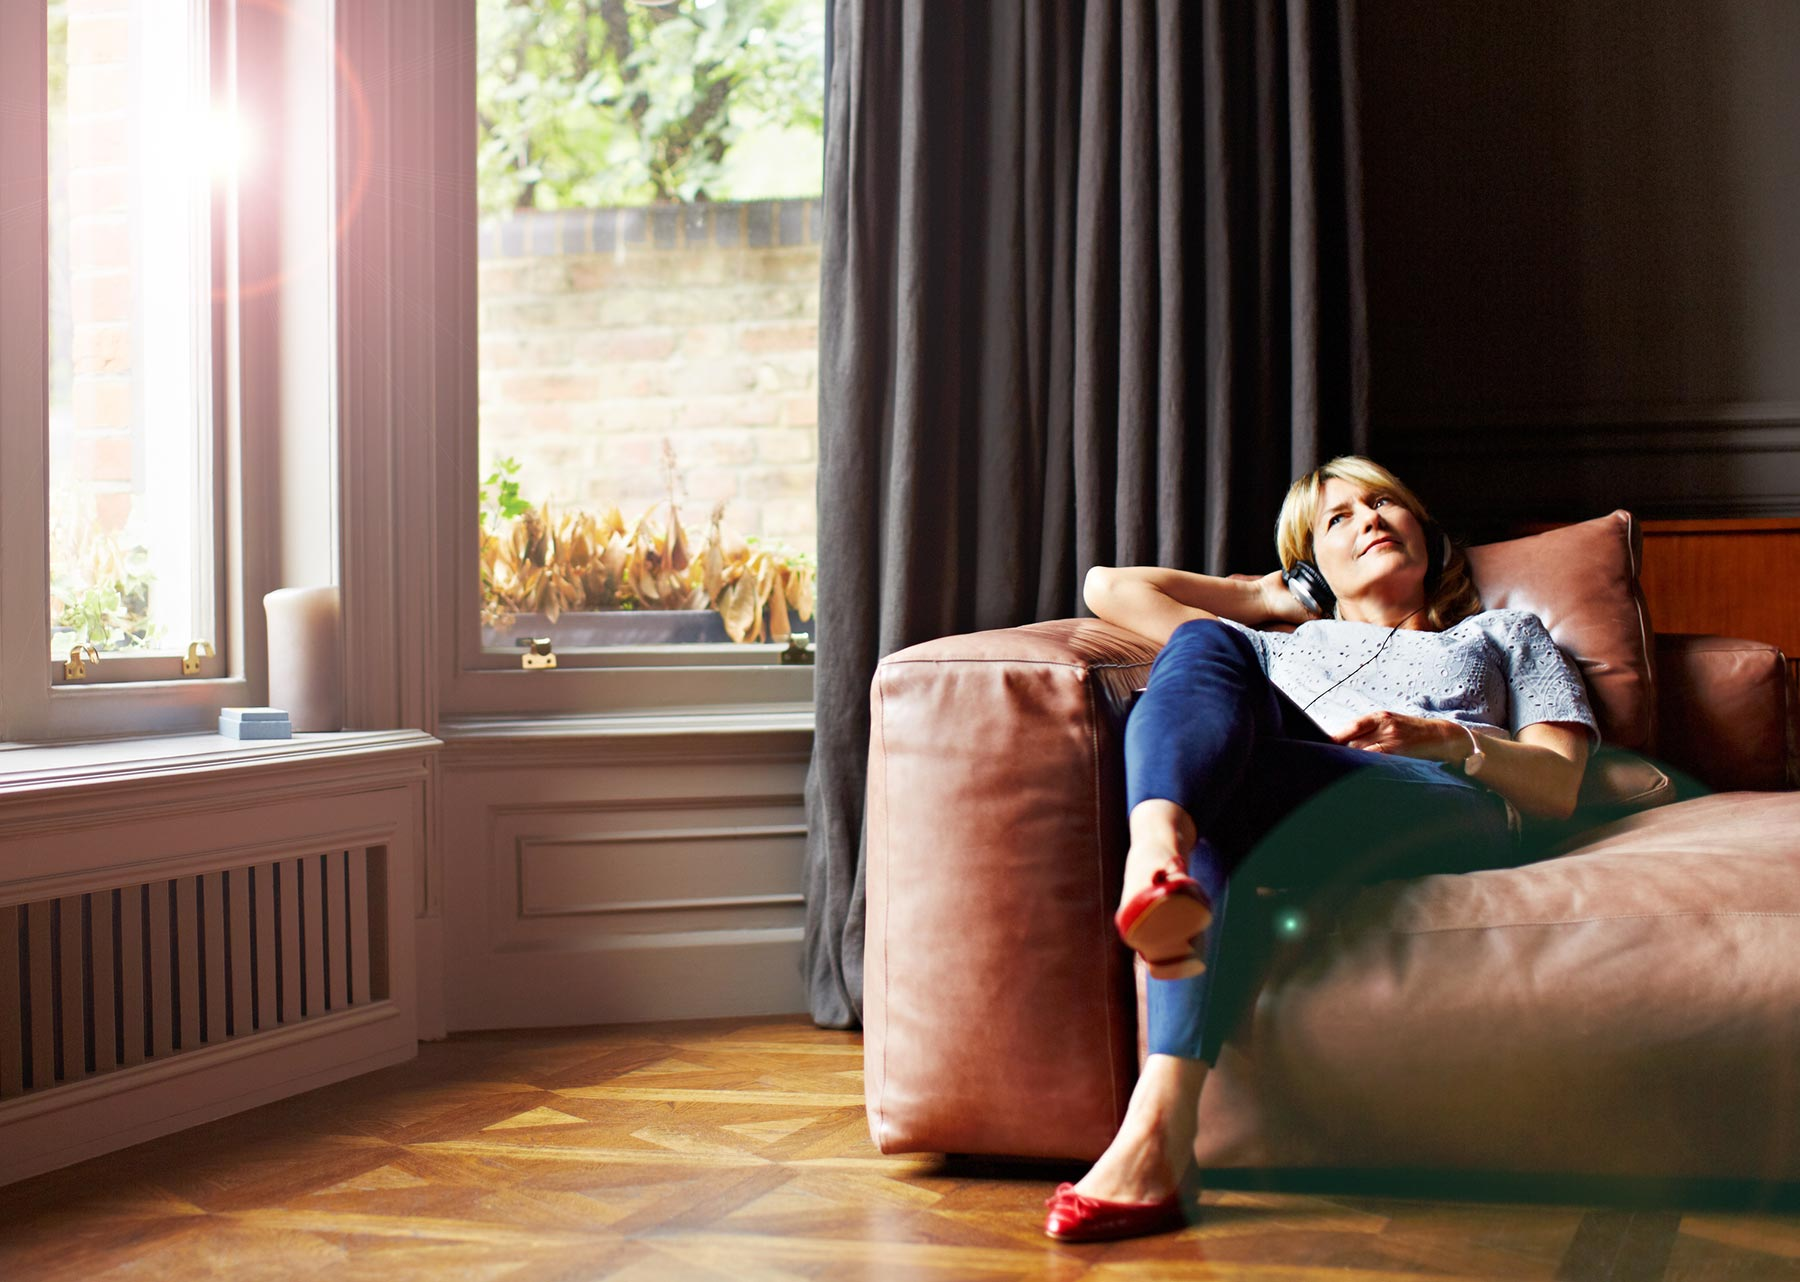 Woman lounging on comfy sofa listening to music in headphones